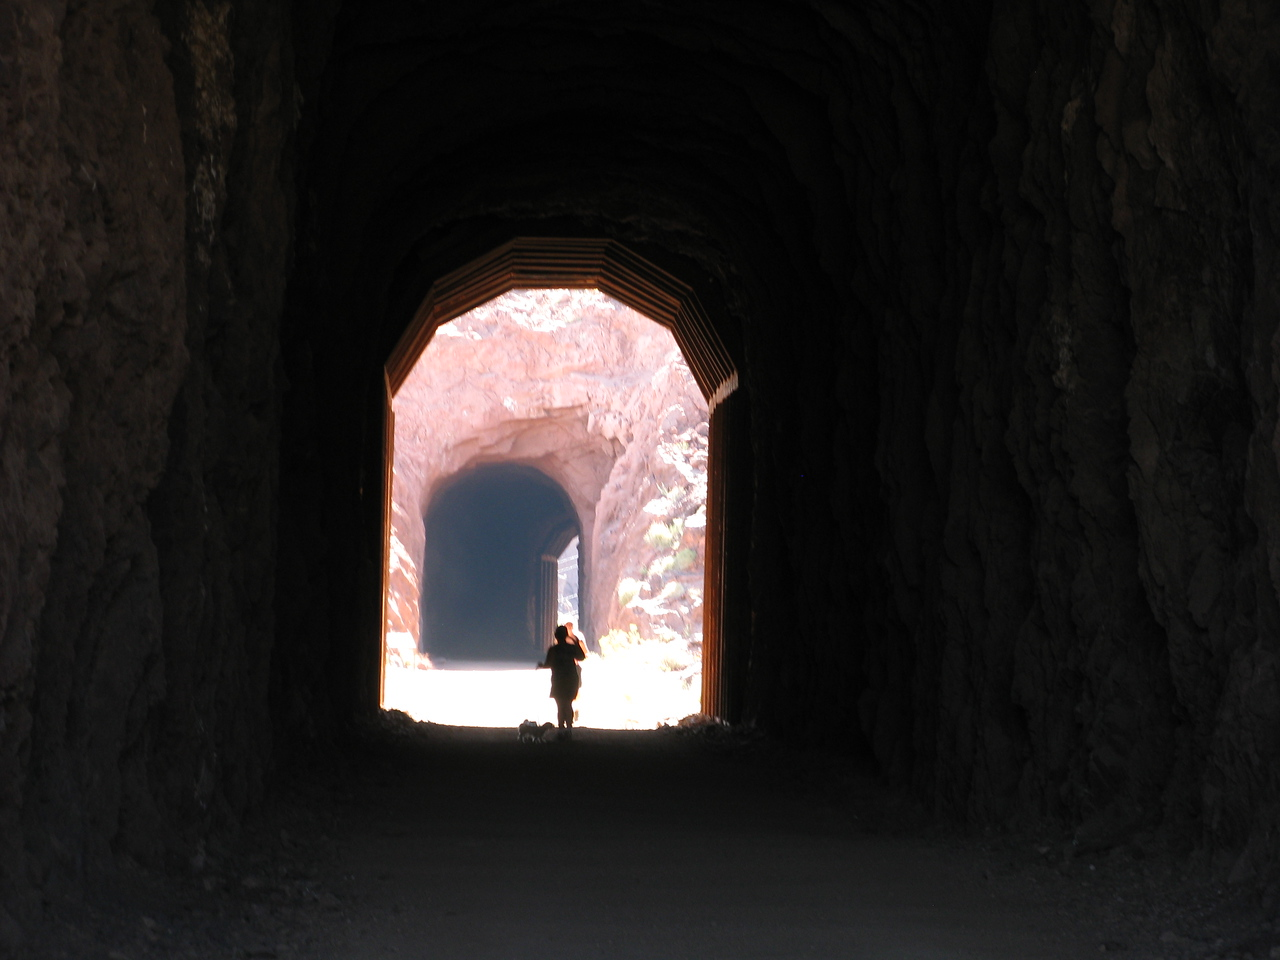 The light at the end of tunnel #1 and also a little light at the end of curved tunnel #2.